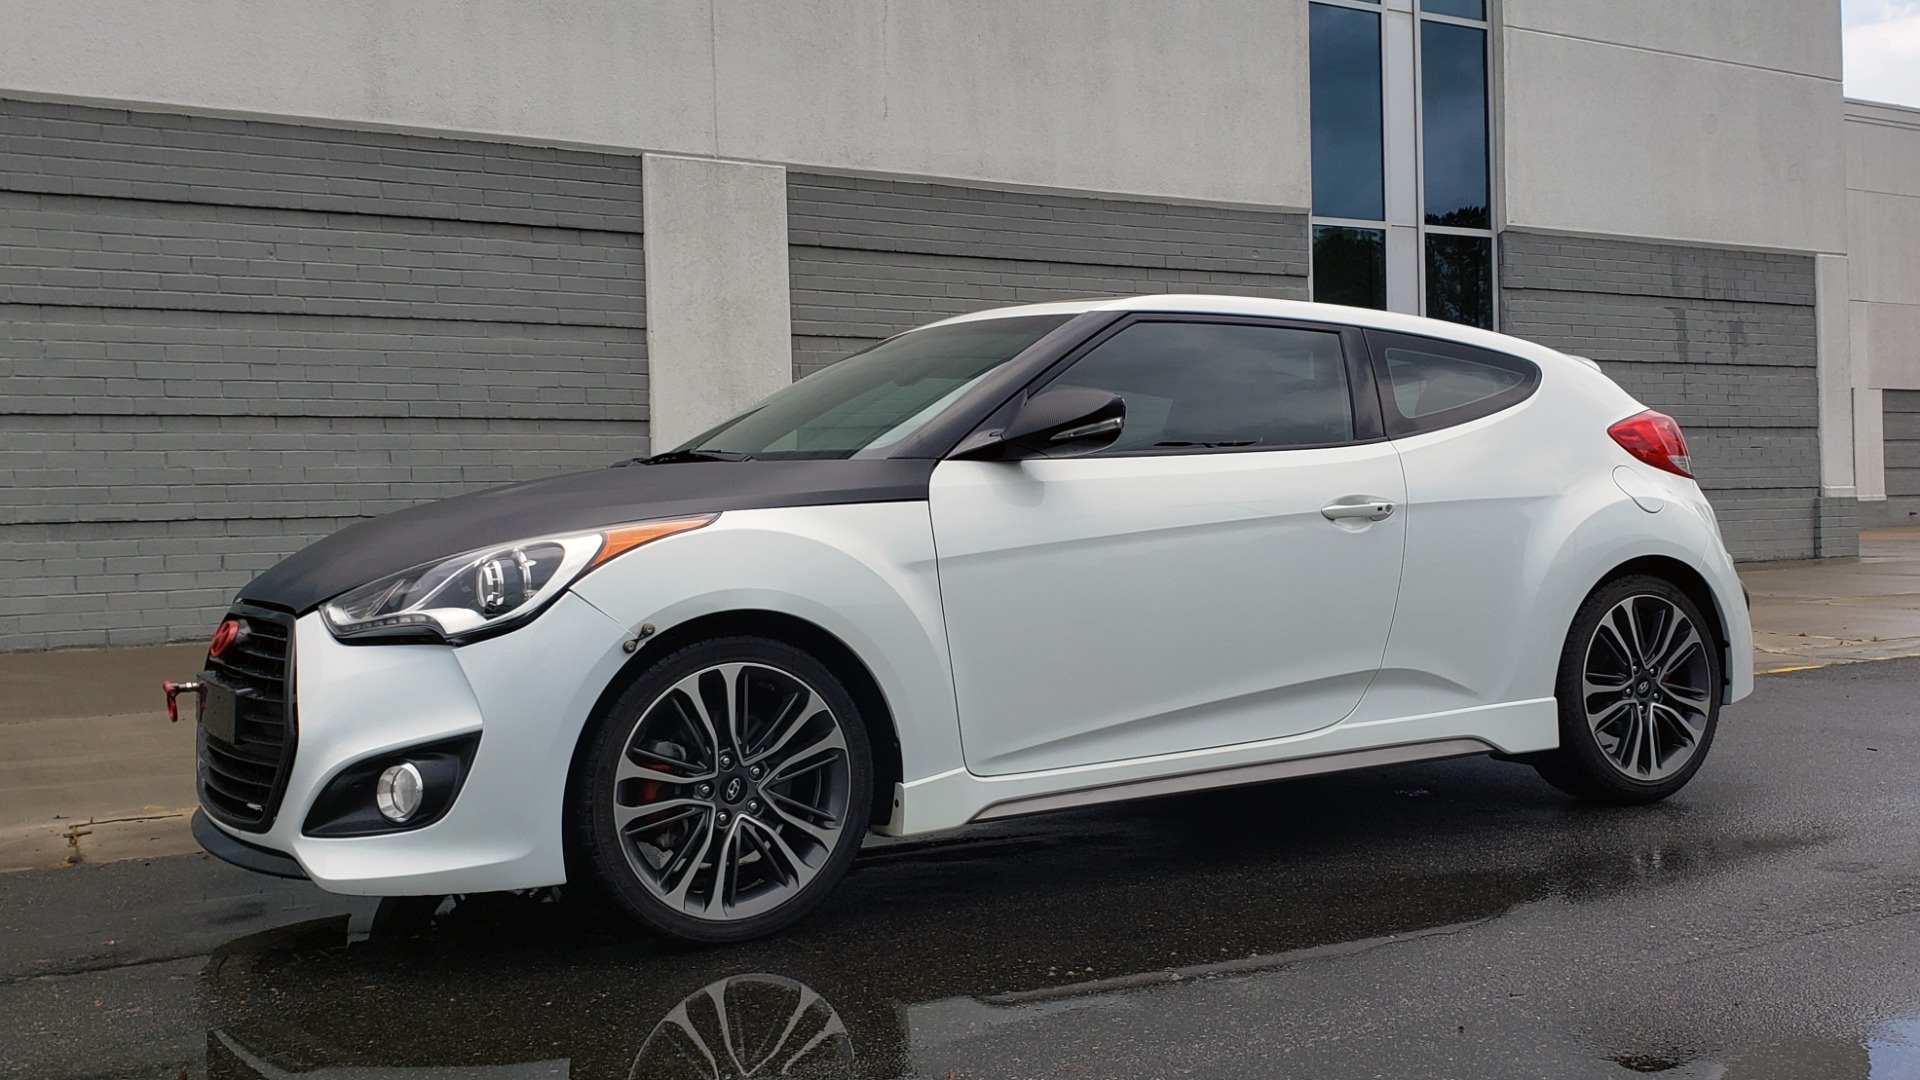 Used 2016 Hyundai VELOSTER 1.6L TURBO / 7-SPD ATUO / 3DR COUPE / NAV / PANO-ROOF for sale Sold at Formula Imports in Charlotte NC 28227 4